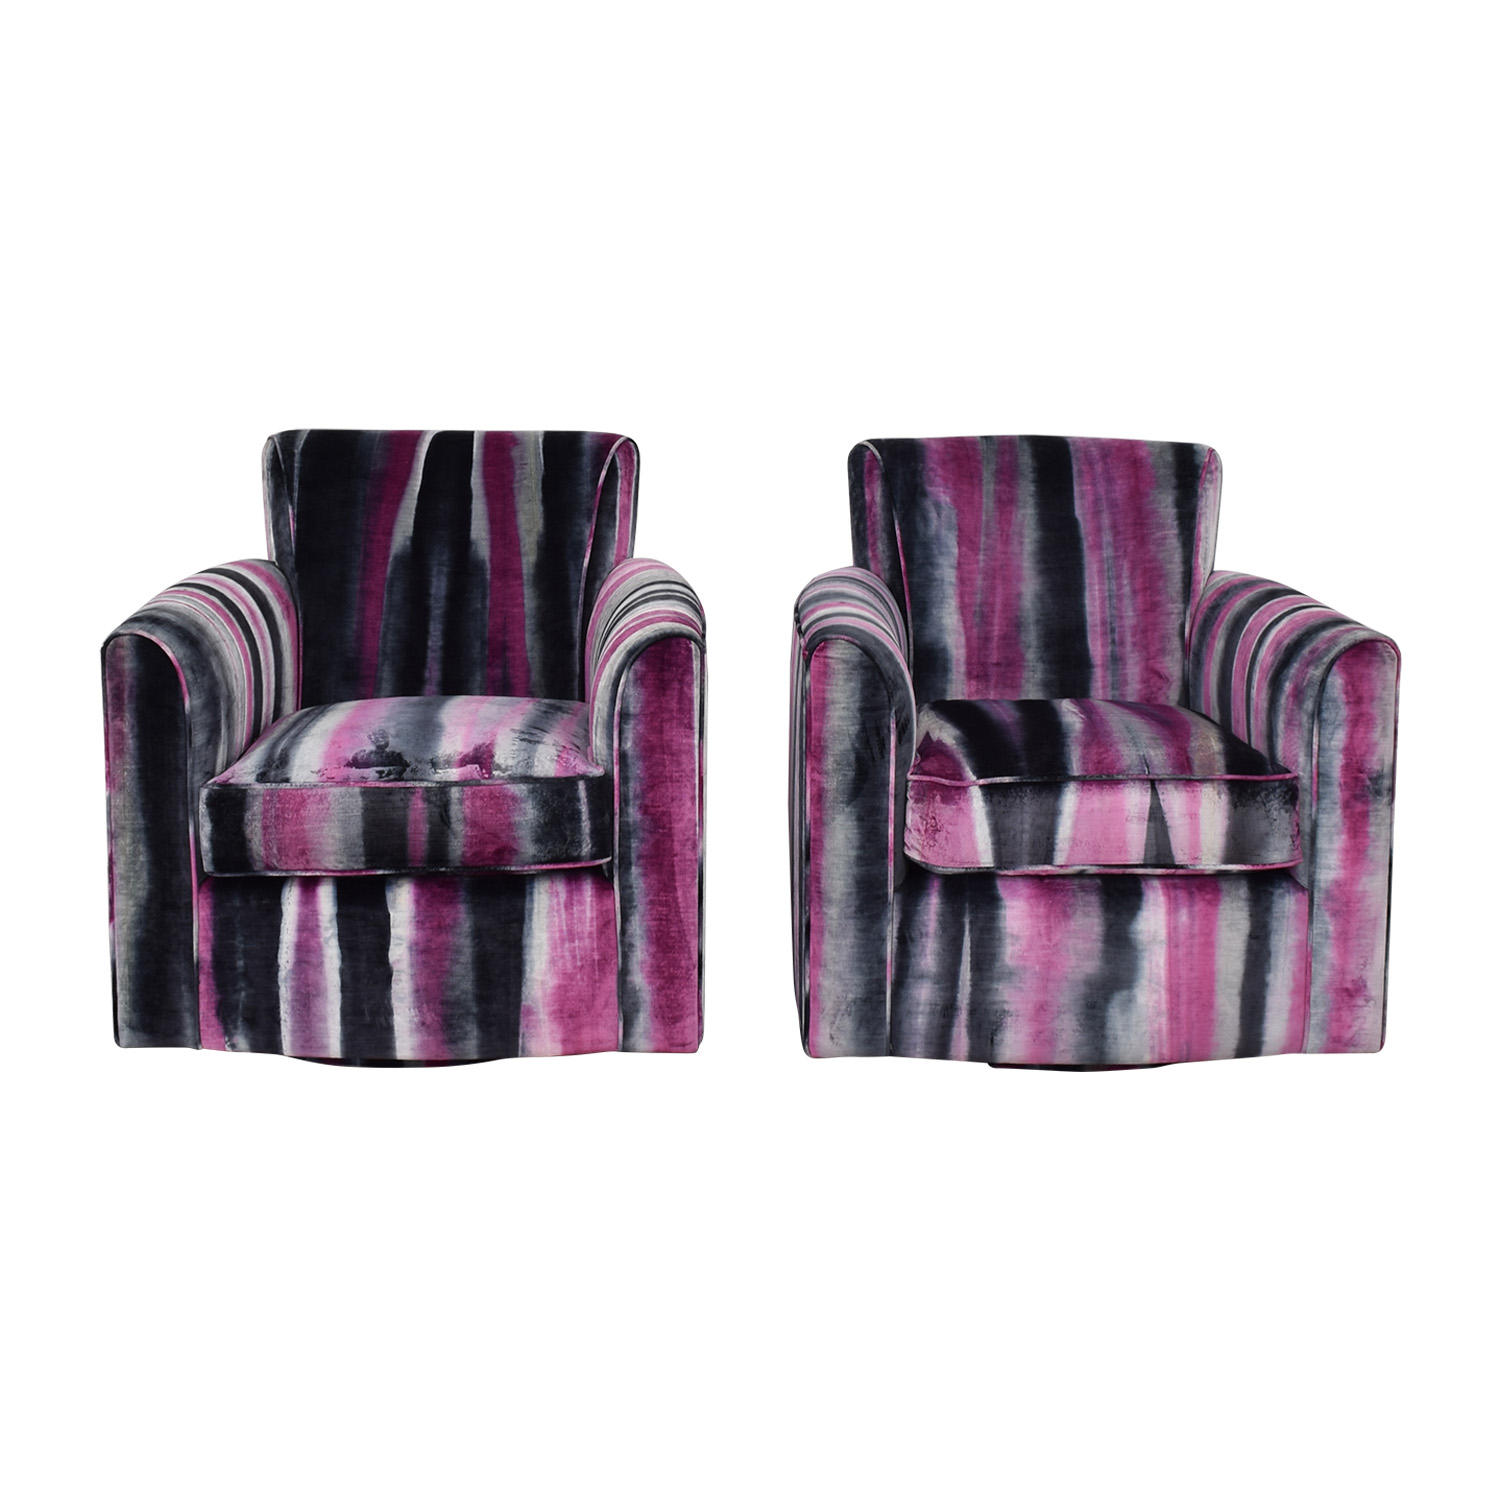 Remarkable 90 Off Furniture Masters Furniture Masters Purple Club Chairs Chairs Beatyapartments Chair Design Images Beatyapartmentscom